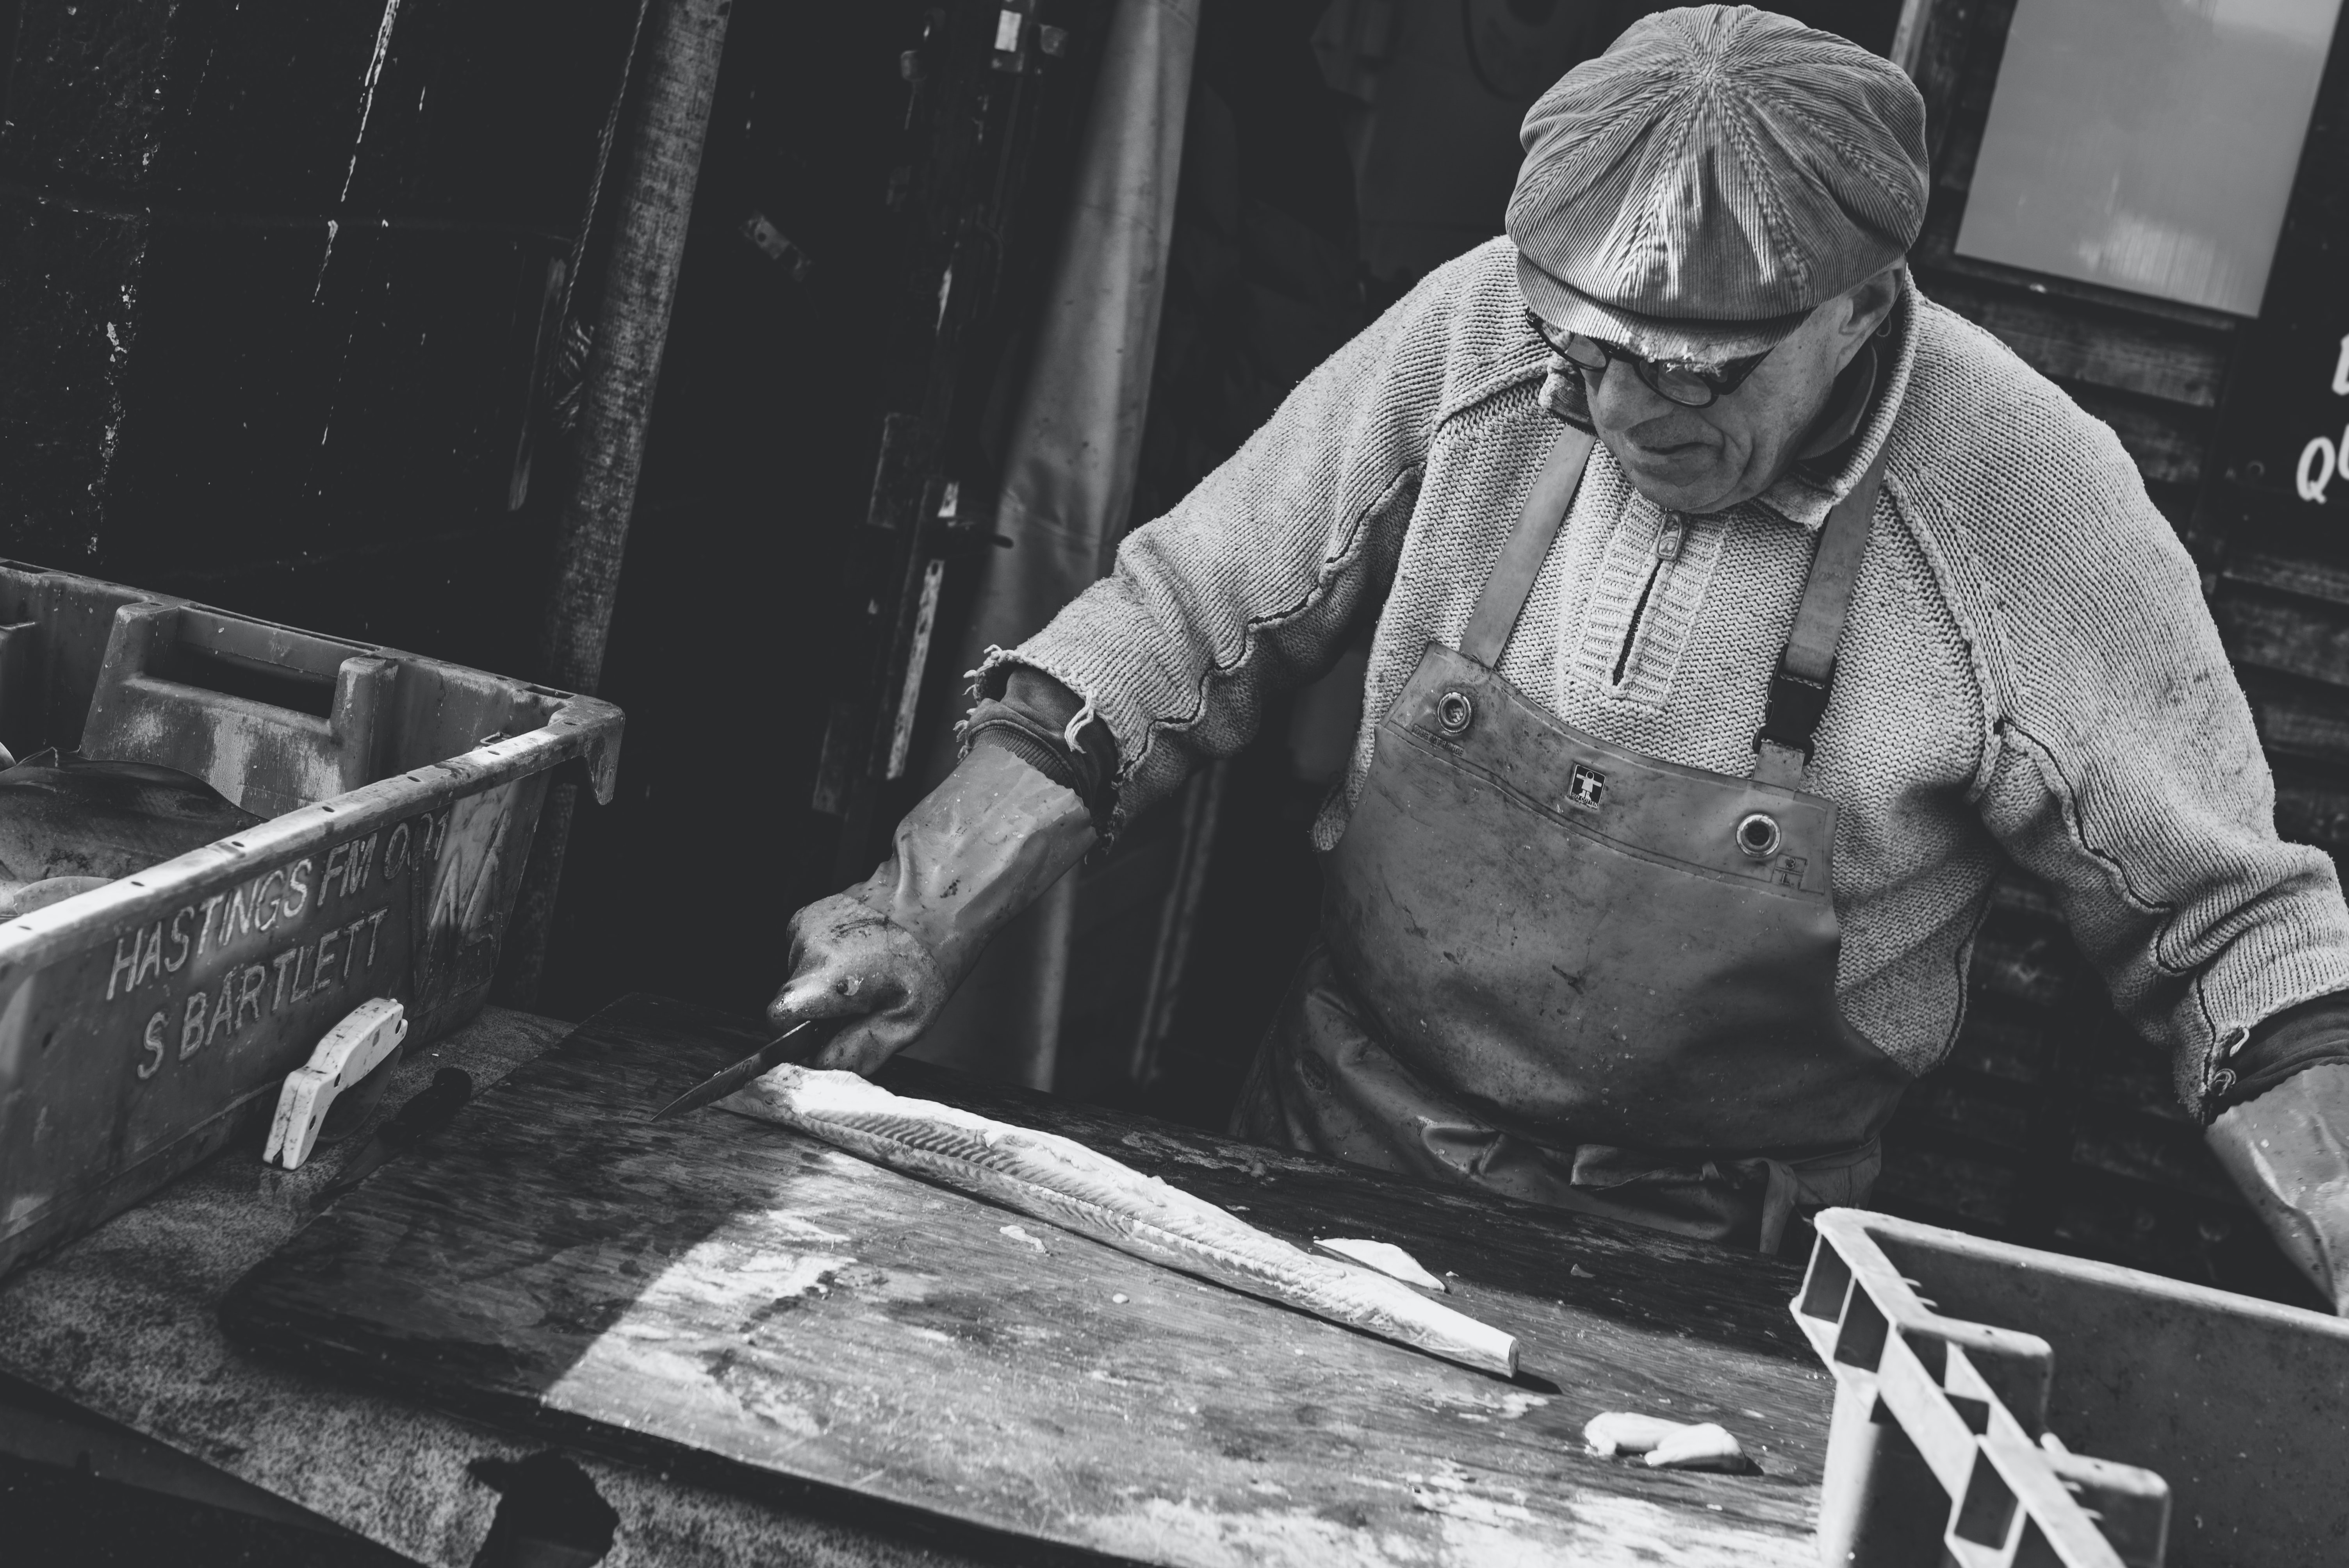 An old fisherman wearing an apron and a cap cutting a fish on a cutting board.